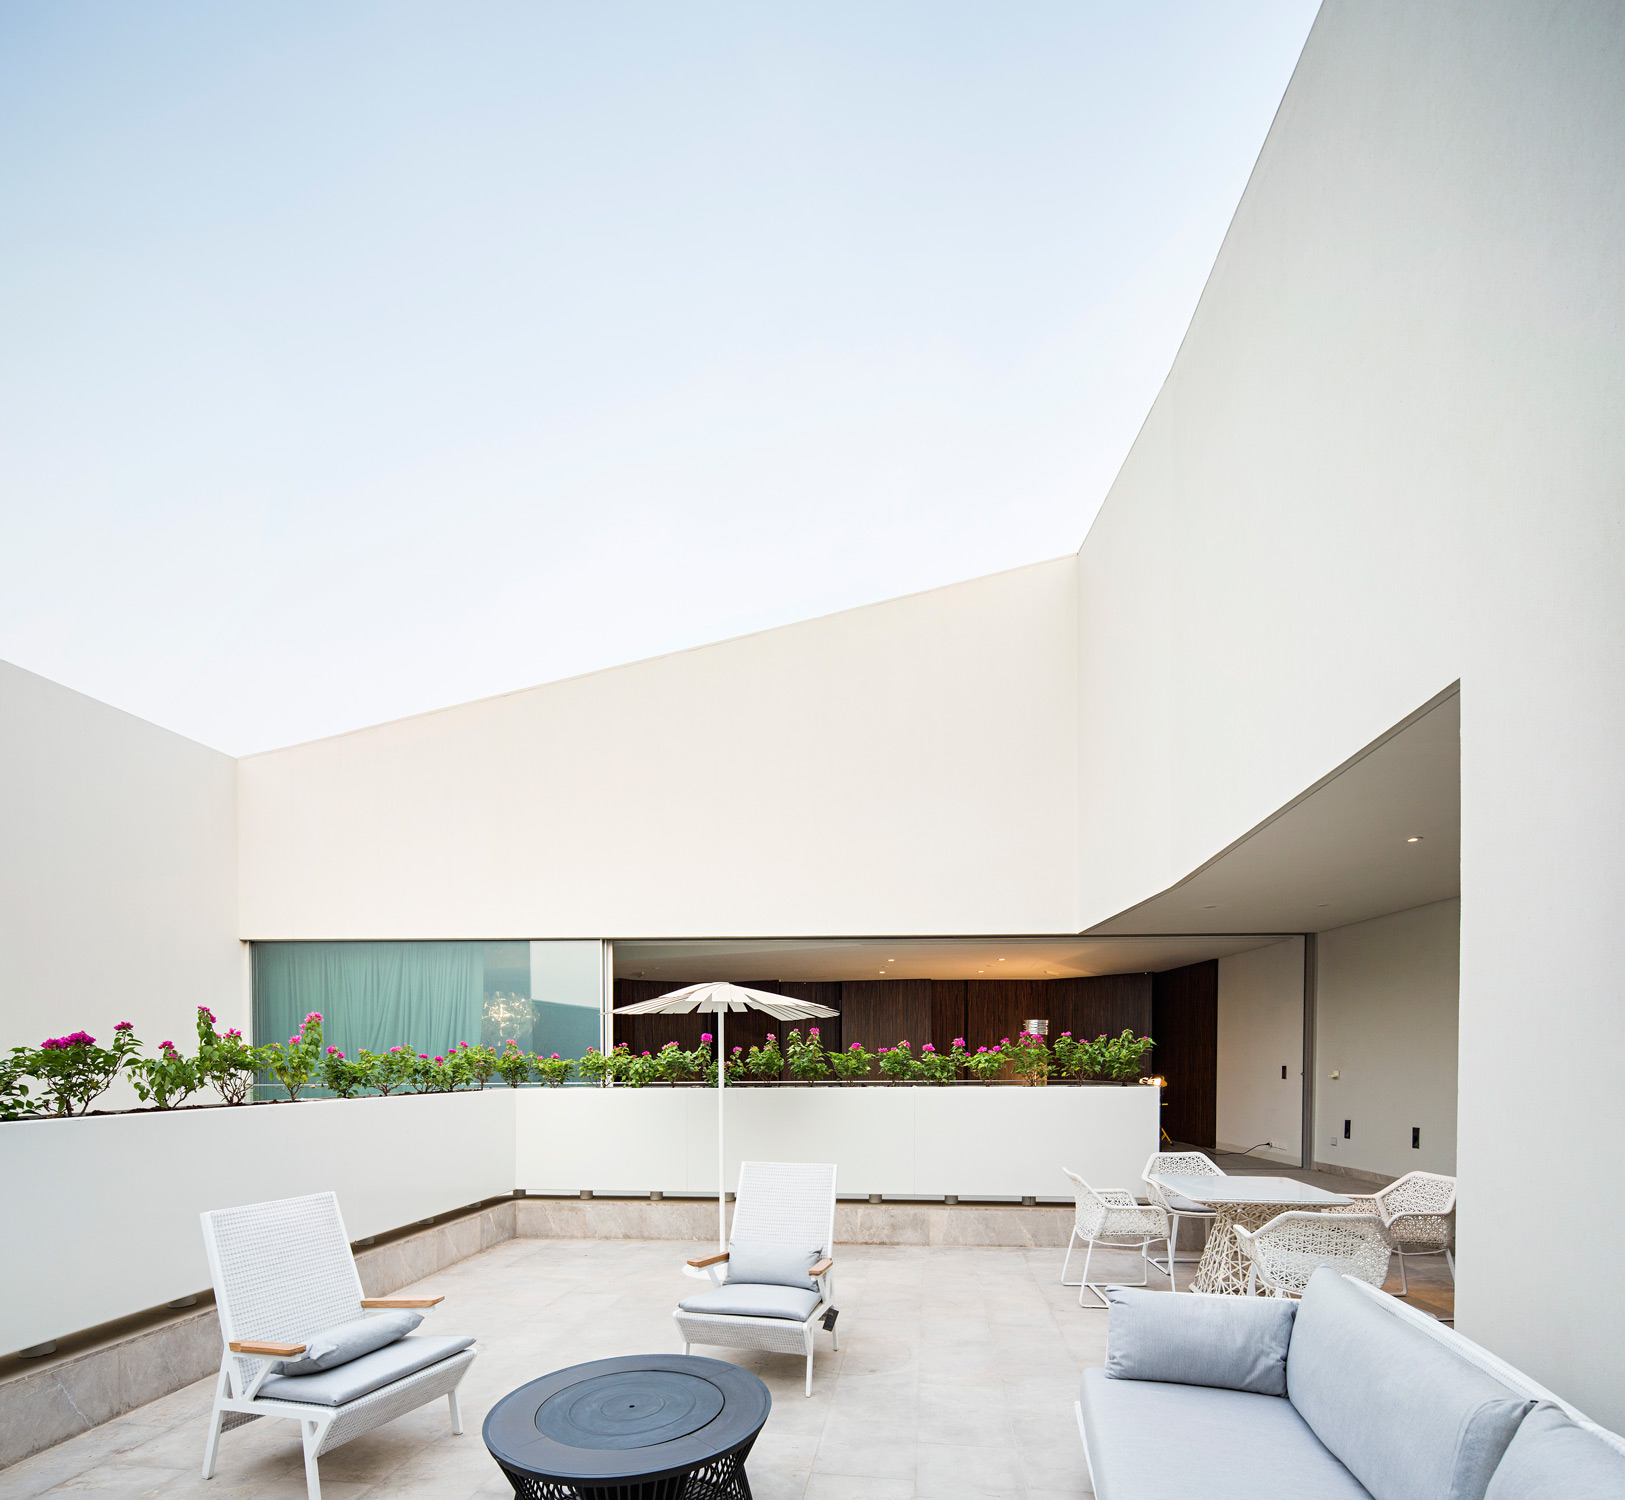 AGI_WALL_HOUSE_KUWAIT_PAN_081015_0077